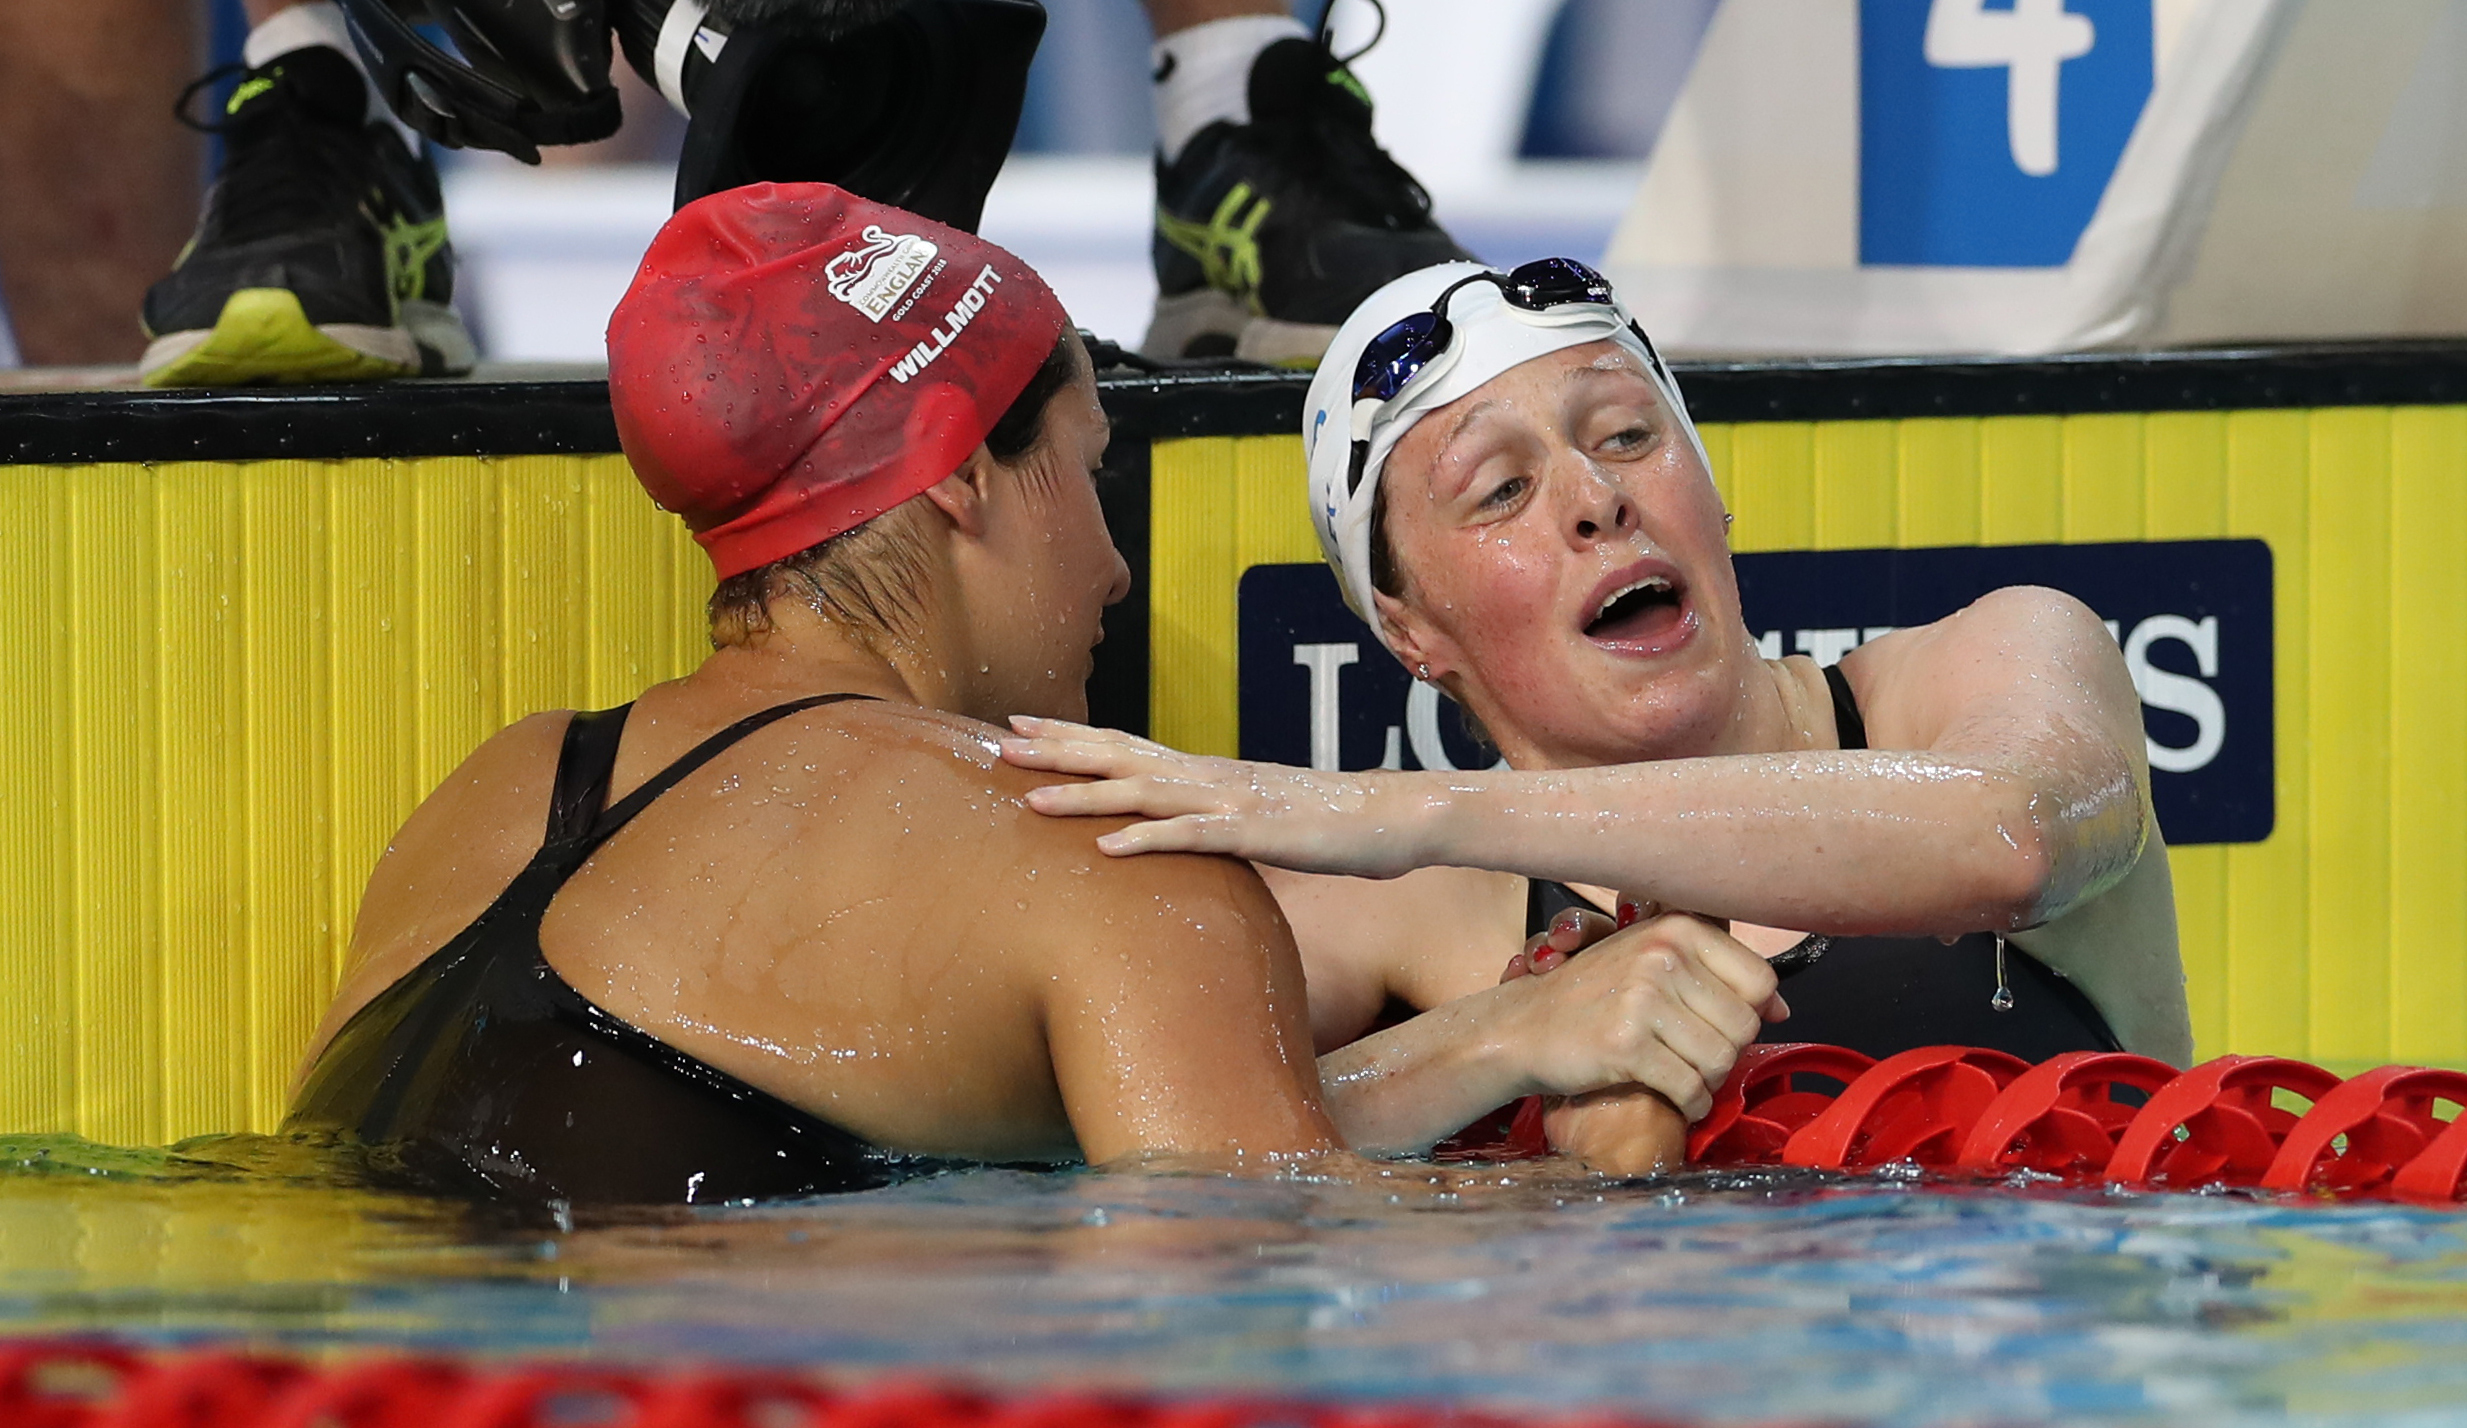 England's Aimee Willmott, left, after winning Gold and Scotland's Hannah Miley who won Silver in the Women's 400m Individual Medley at the Optus Aquatic Centre during day one of the 2018 Commonwealth Games in the Gold Coast, Australia.